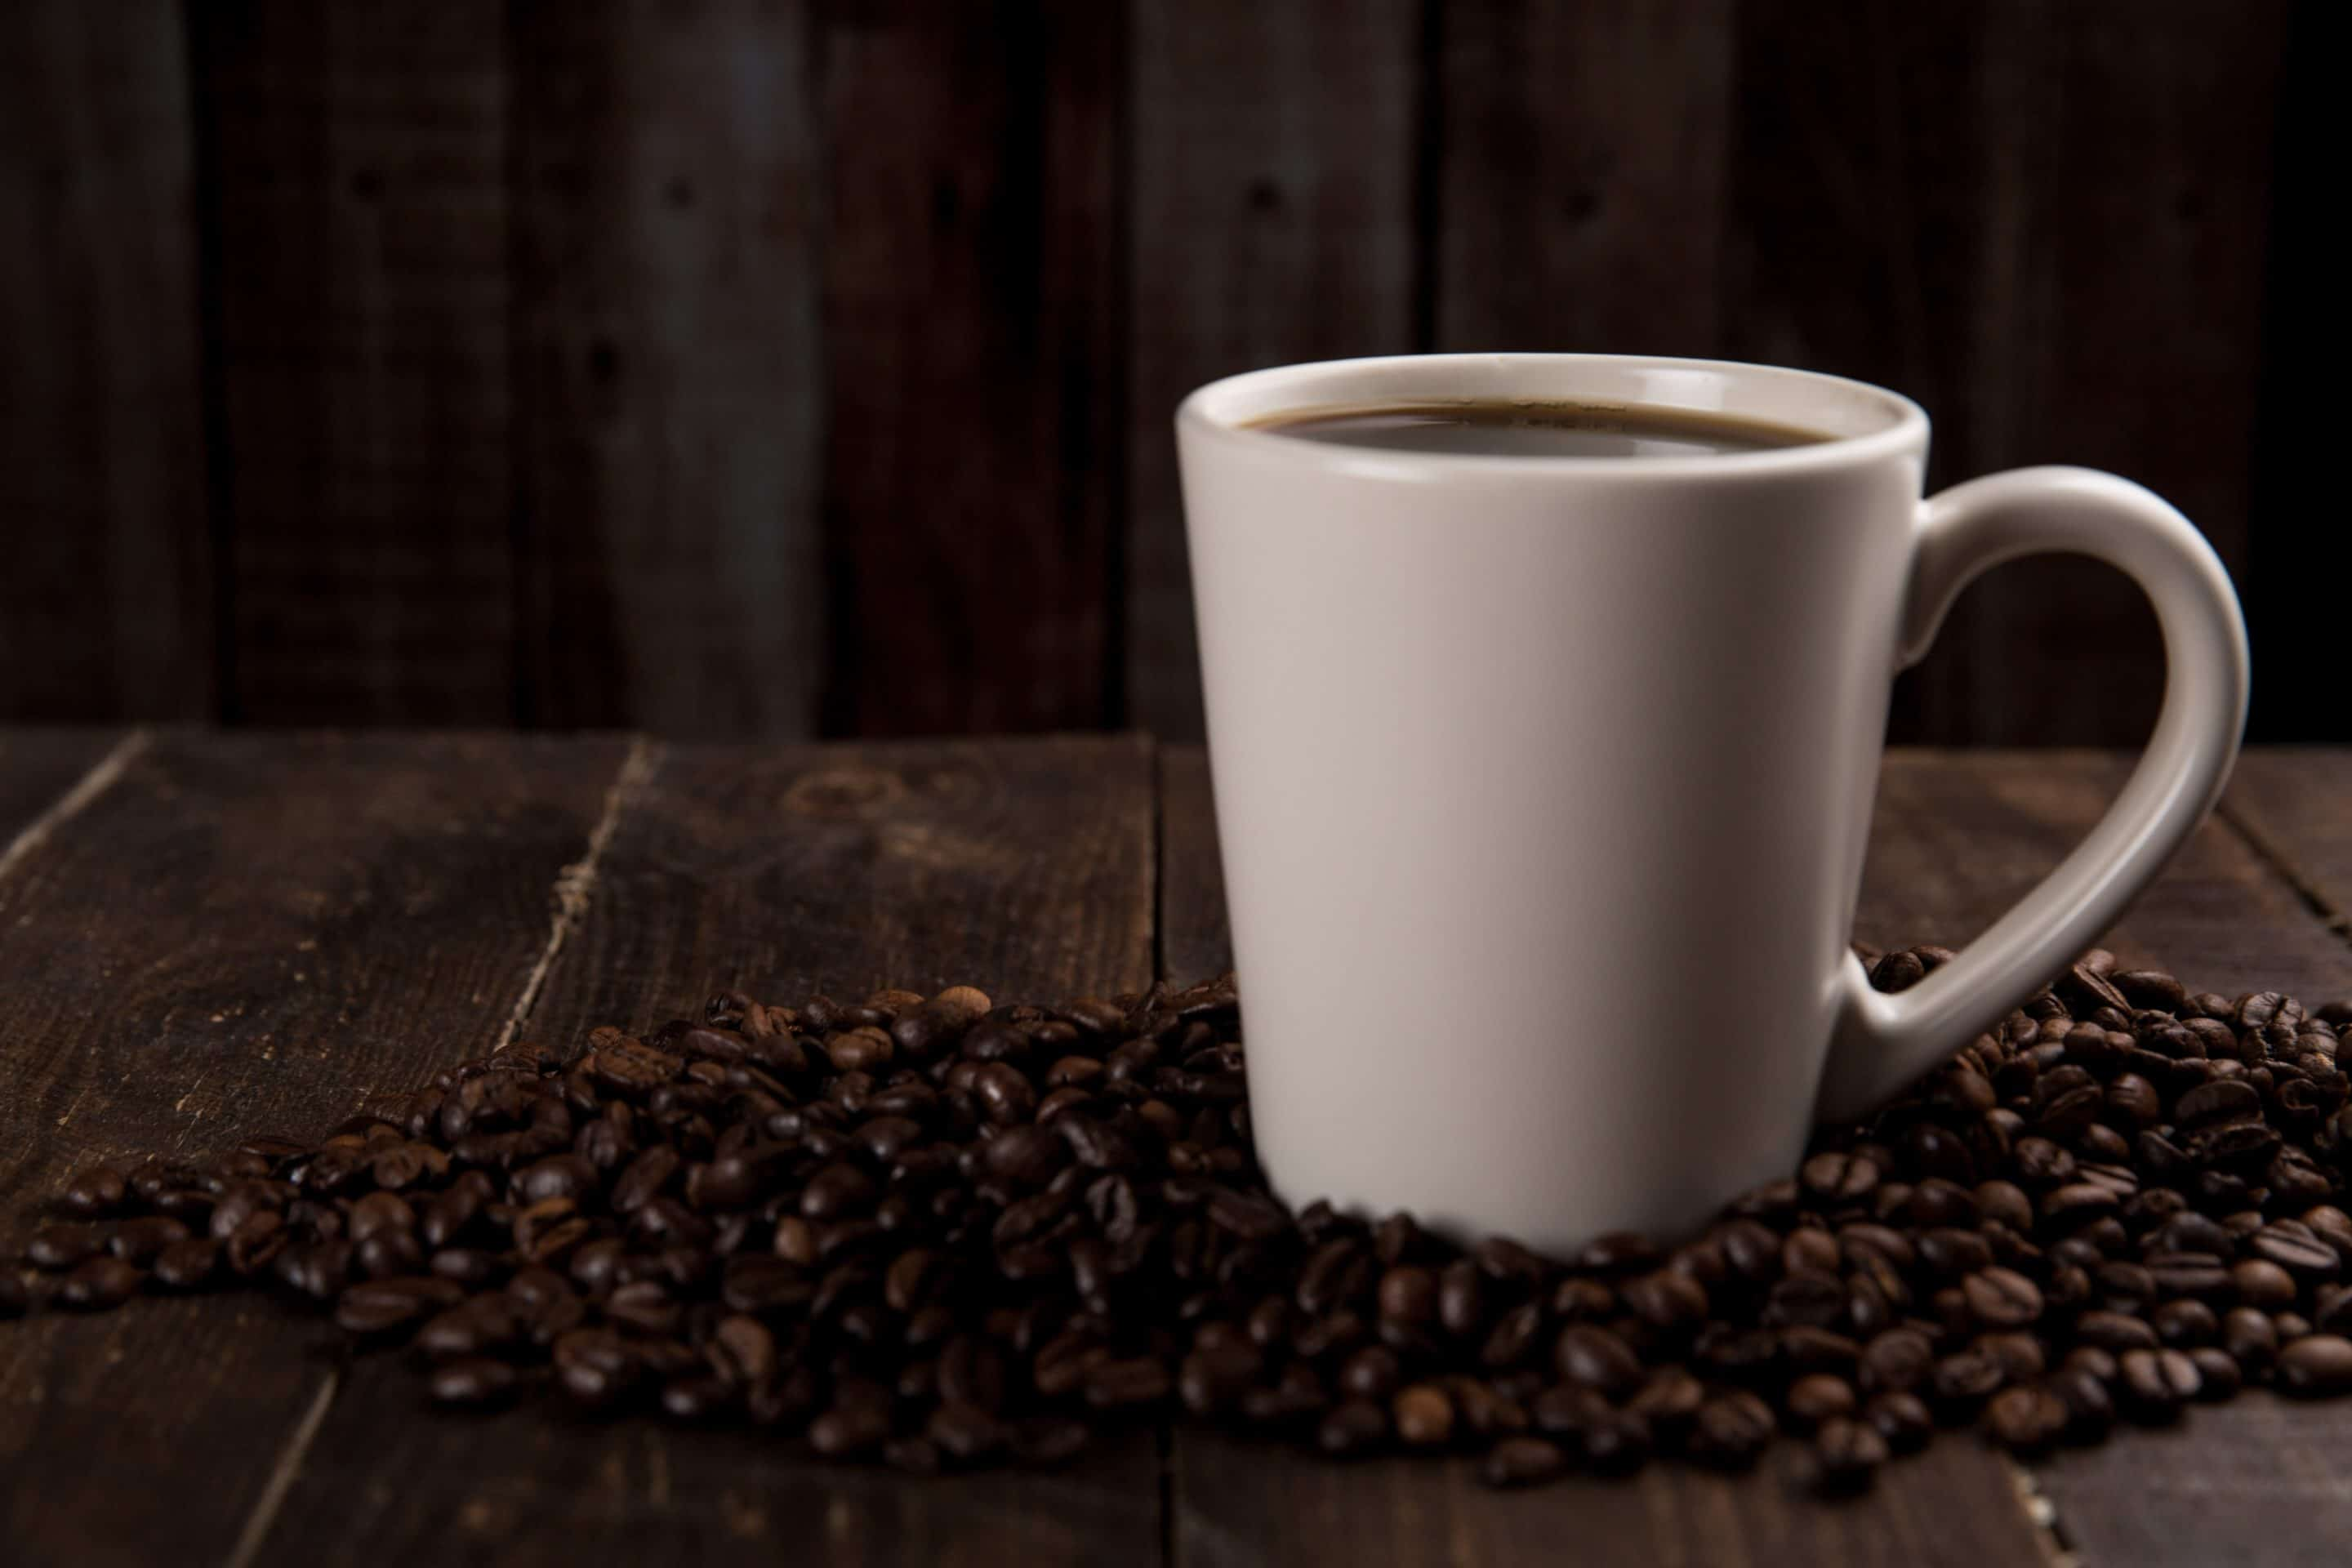 Keurig K200 vs. Keurig K50: A Side-by-Side Comparison of the Best and Worst Features